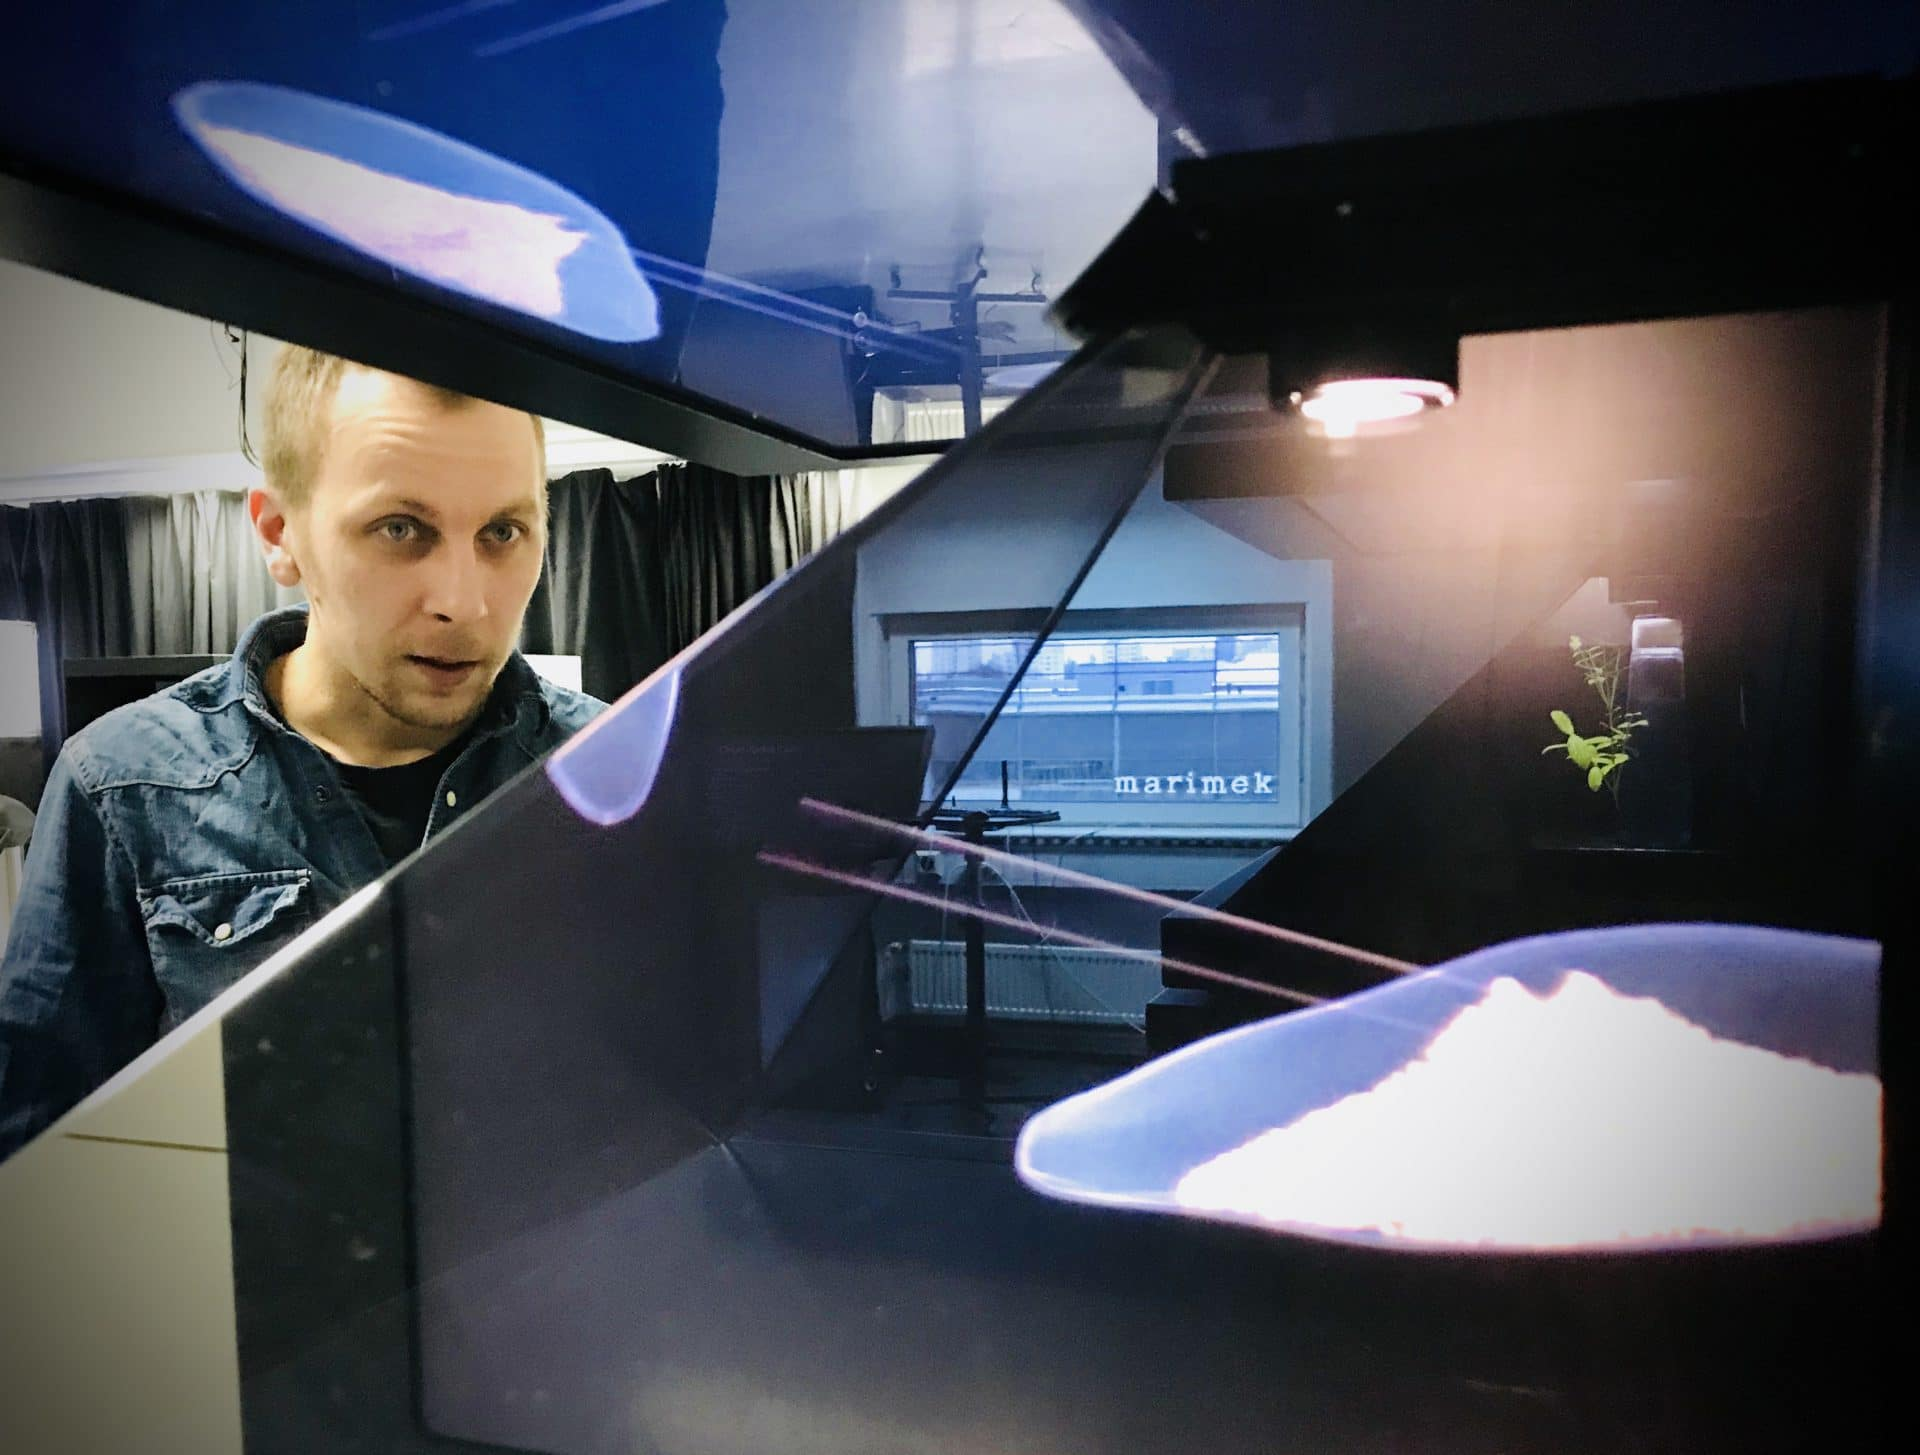 Mixing realities in 3D holographic displays